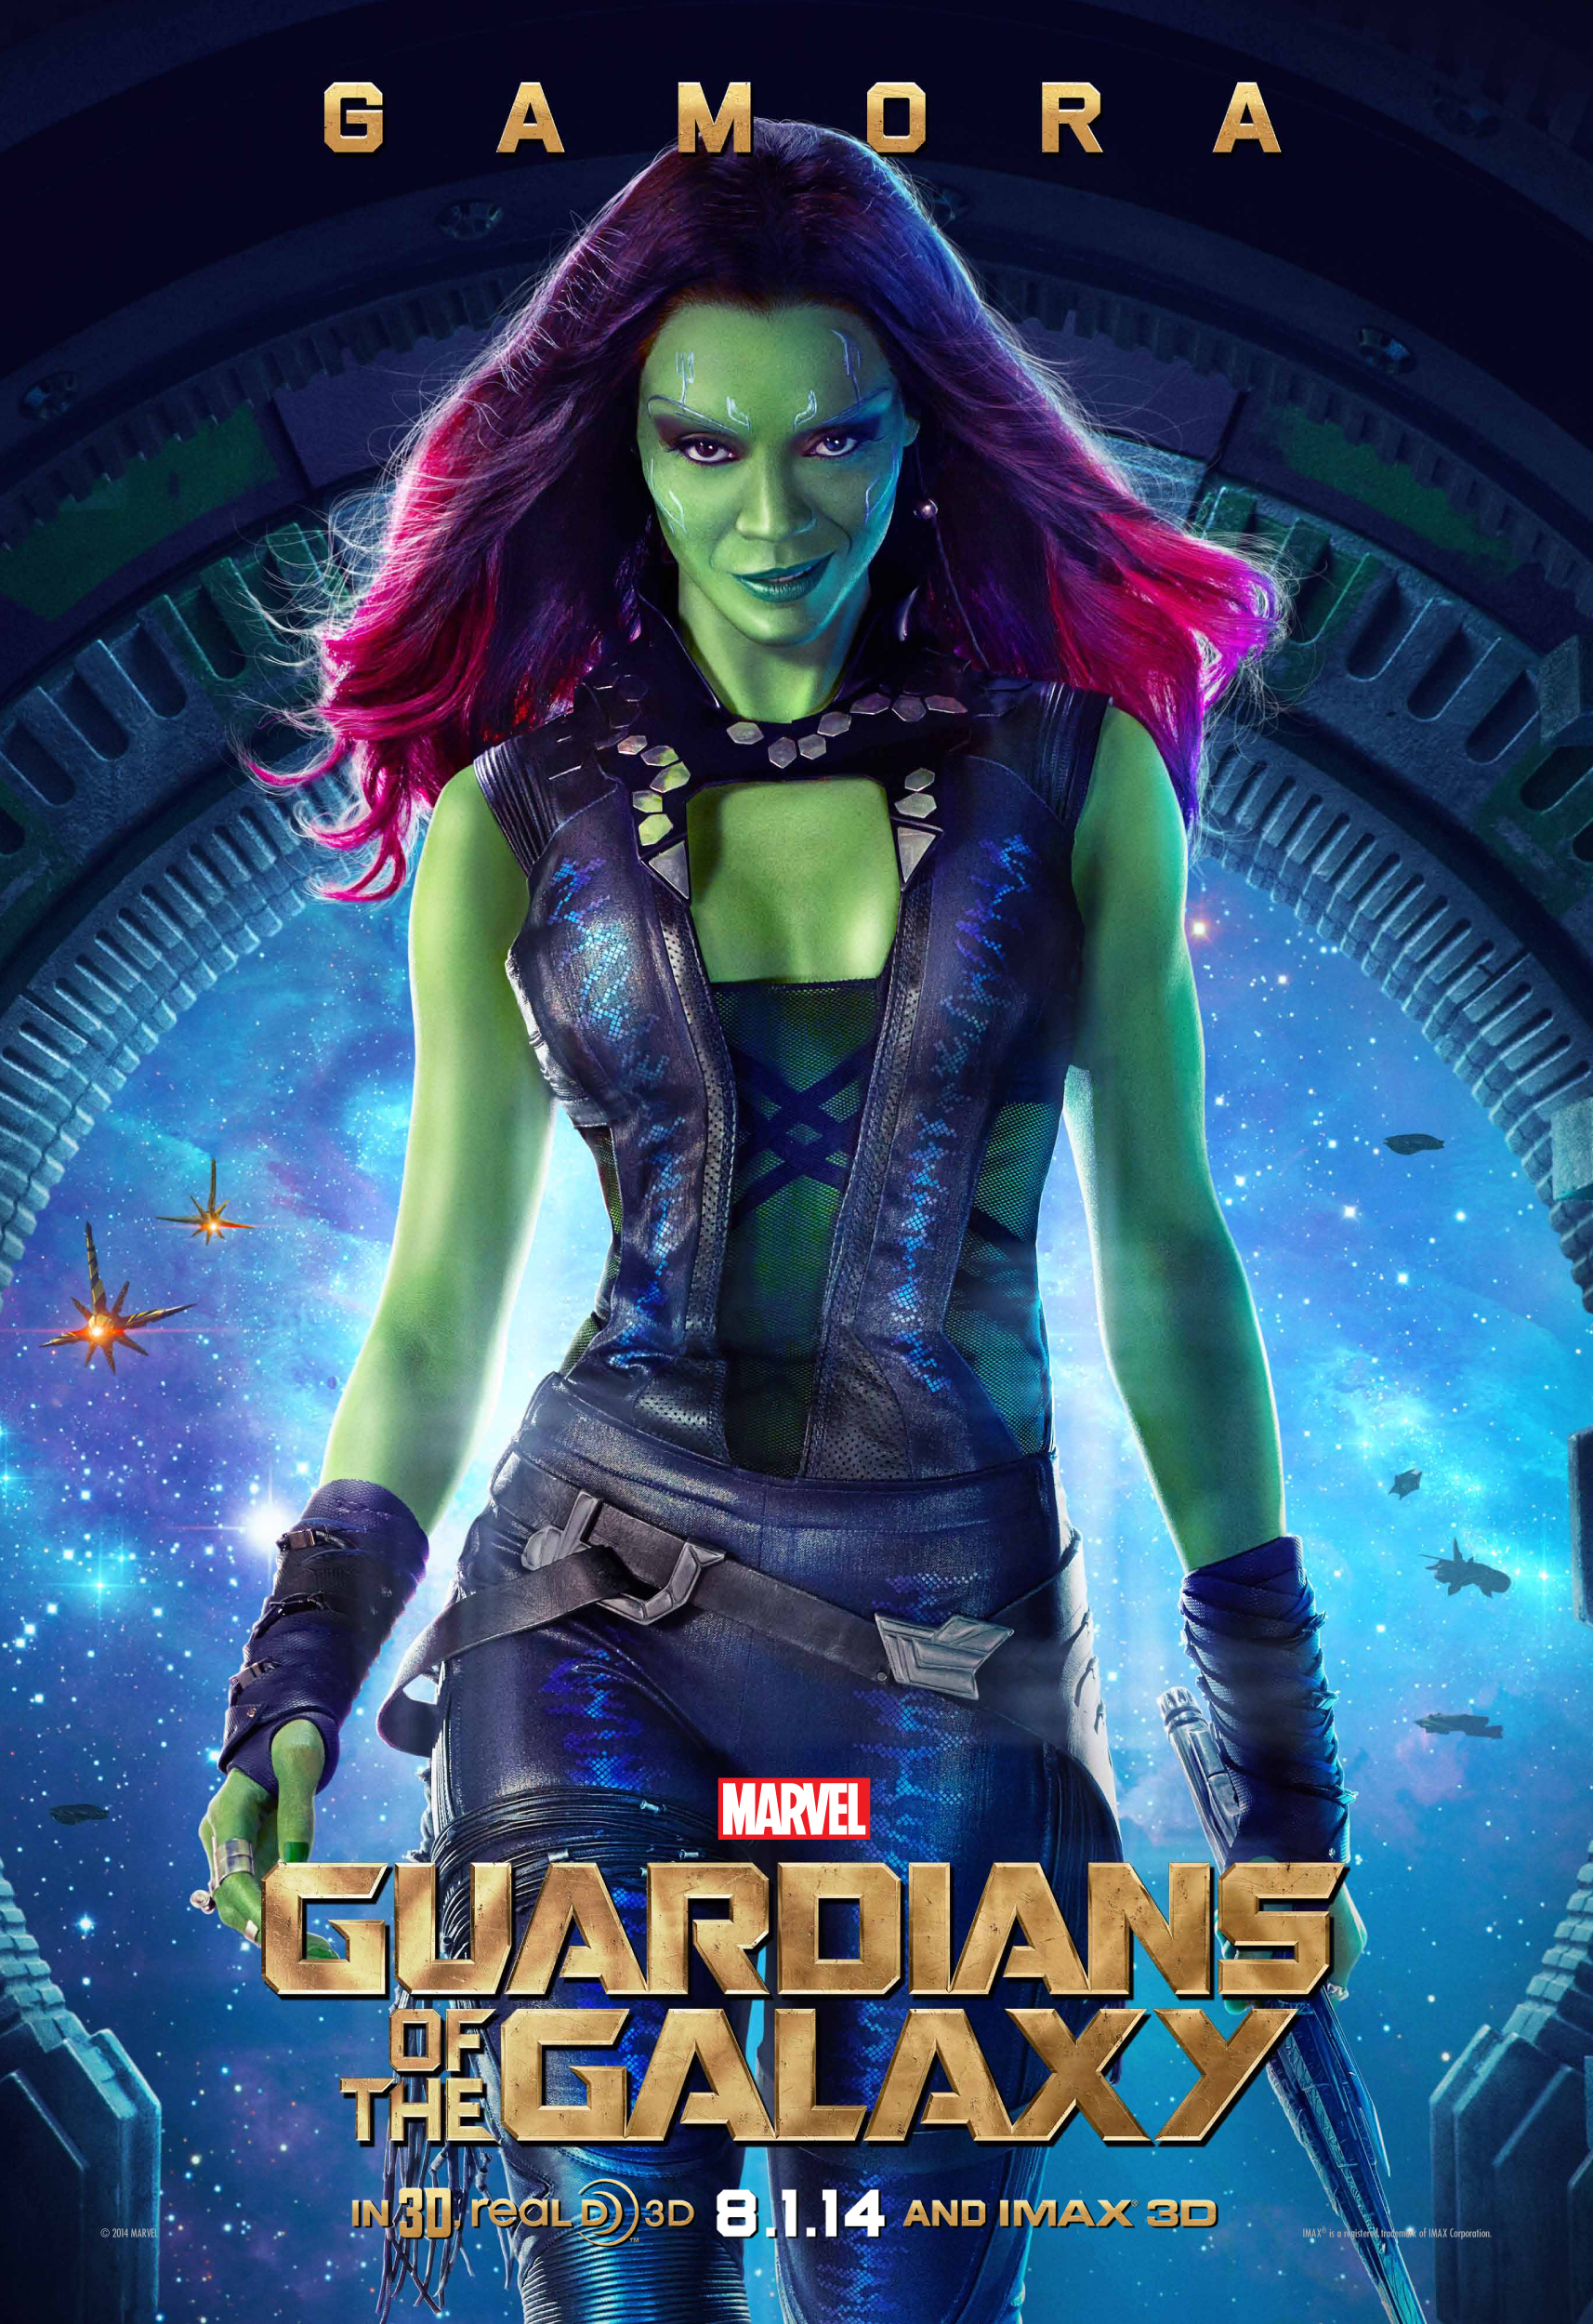 GUARDIANS OF THE GALAXY-Official Poster Banner PROMO CHAR-12JUNHO2014-03